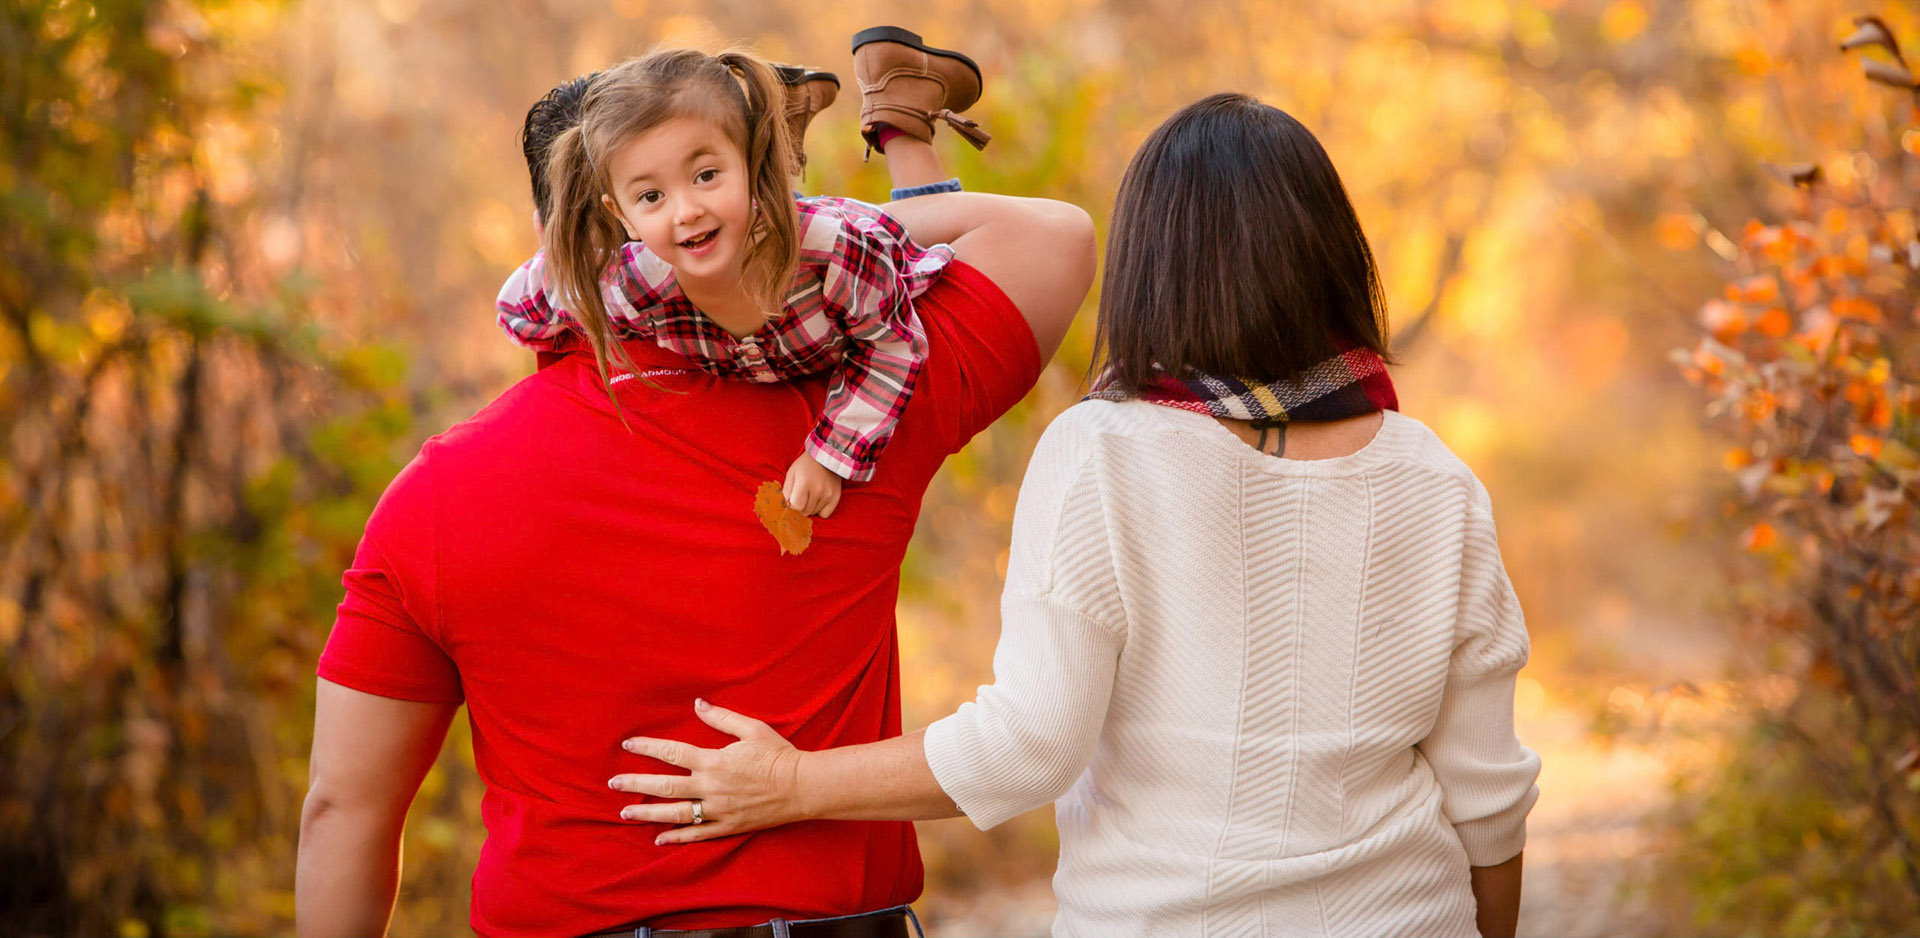 Cute girl being packed away by parents during family photos in autumn in Lethbridge